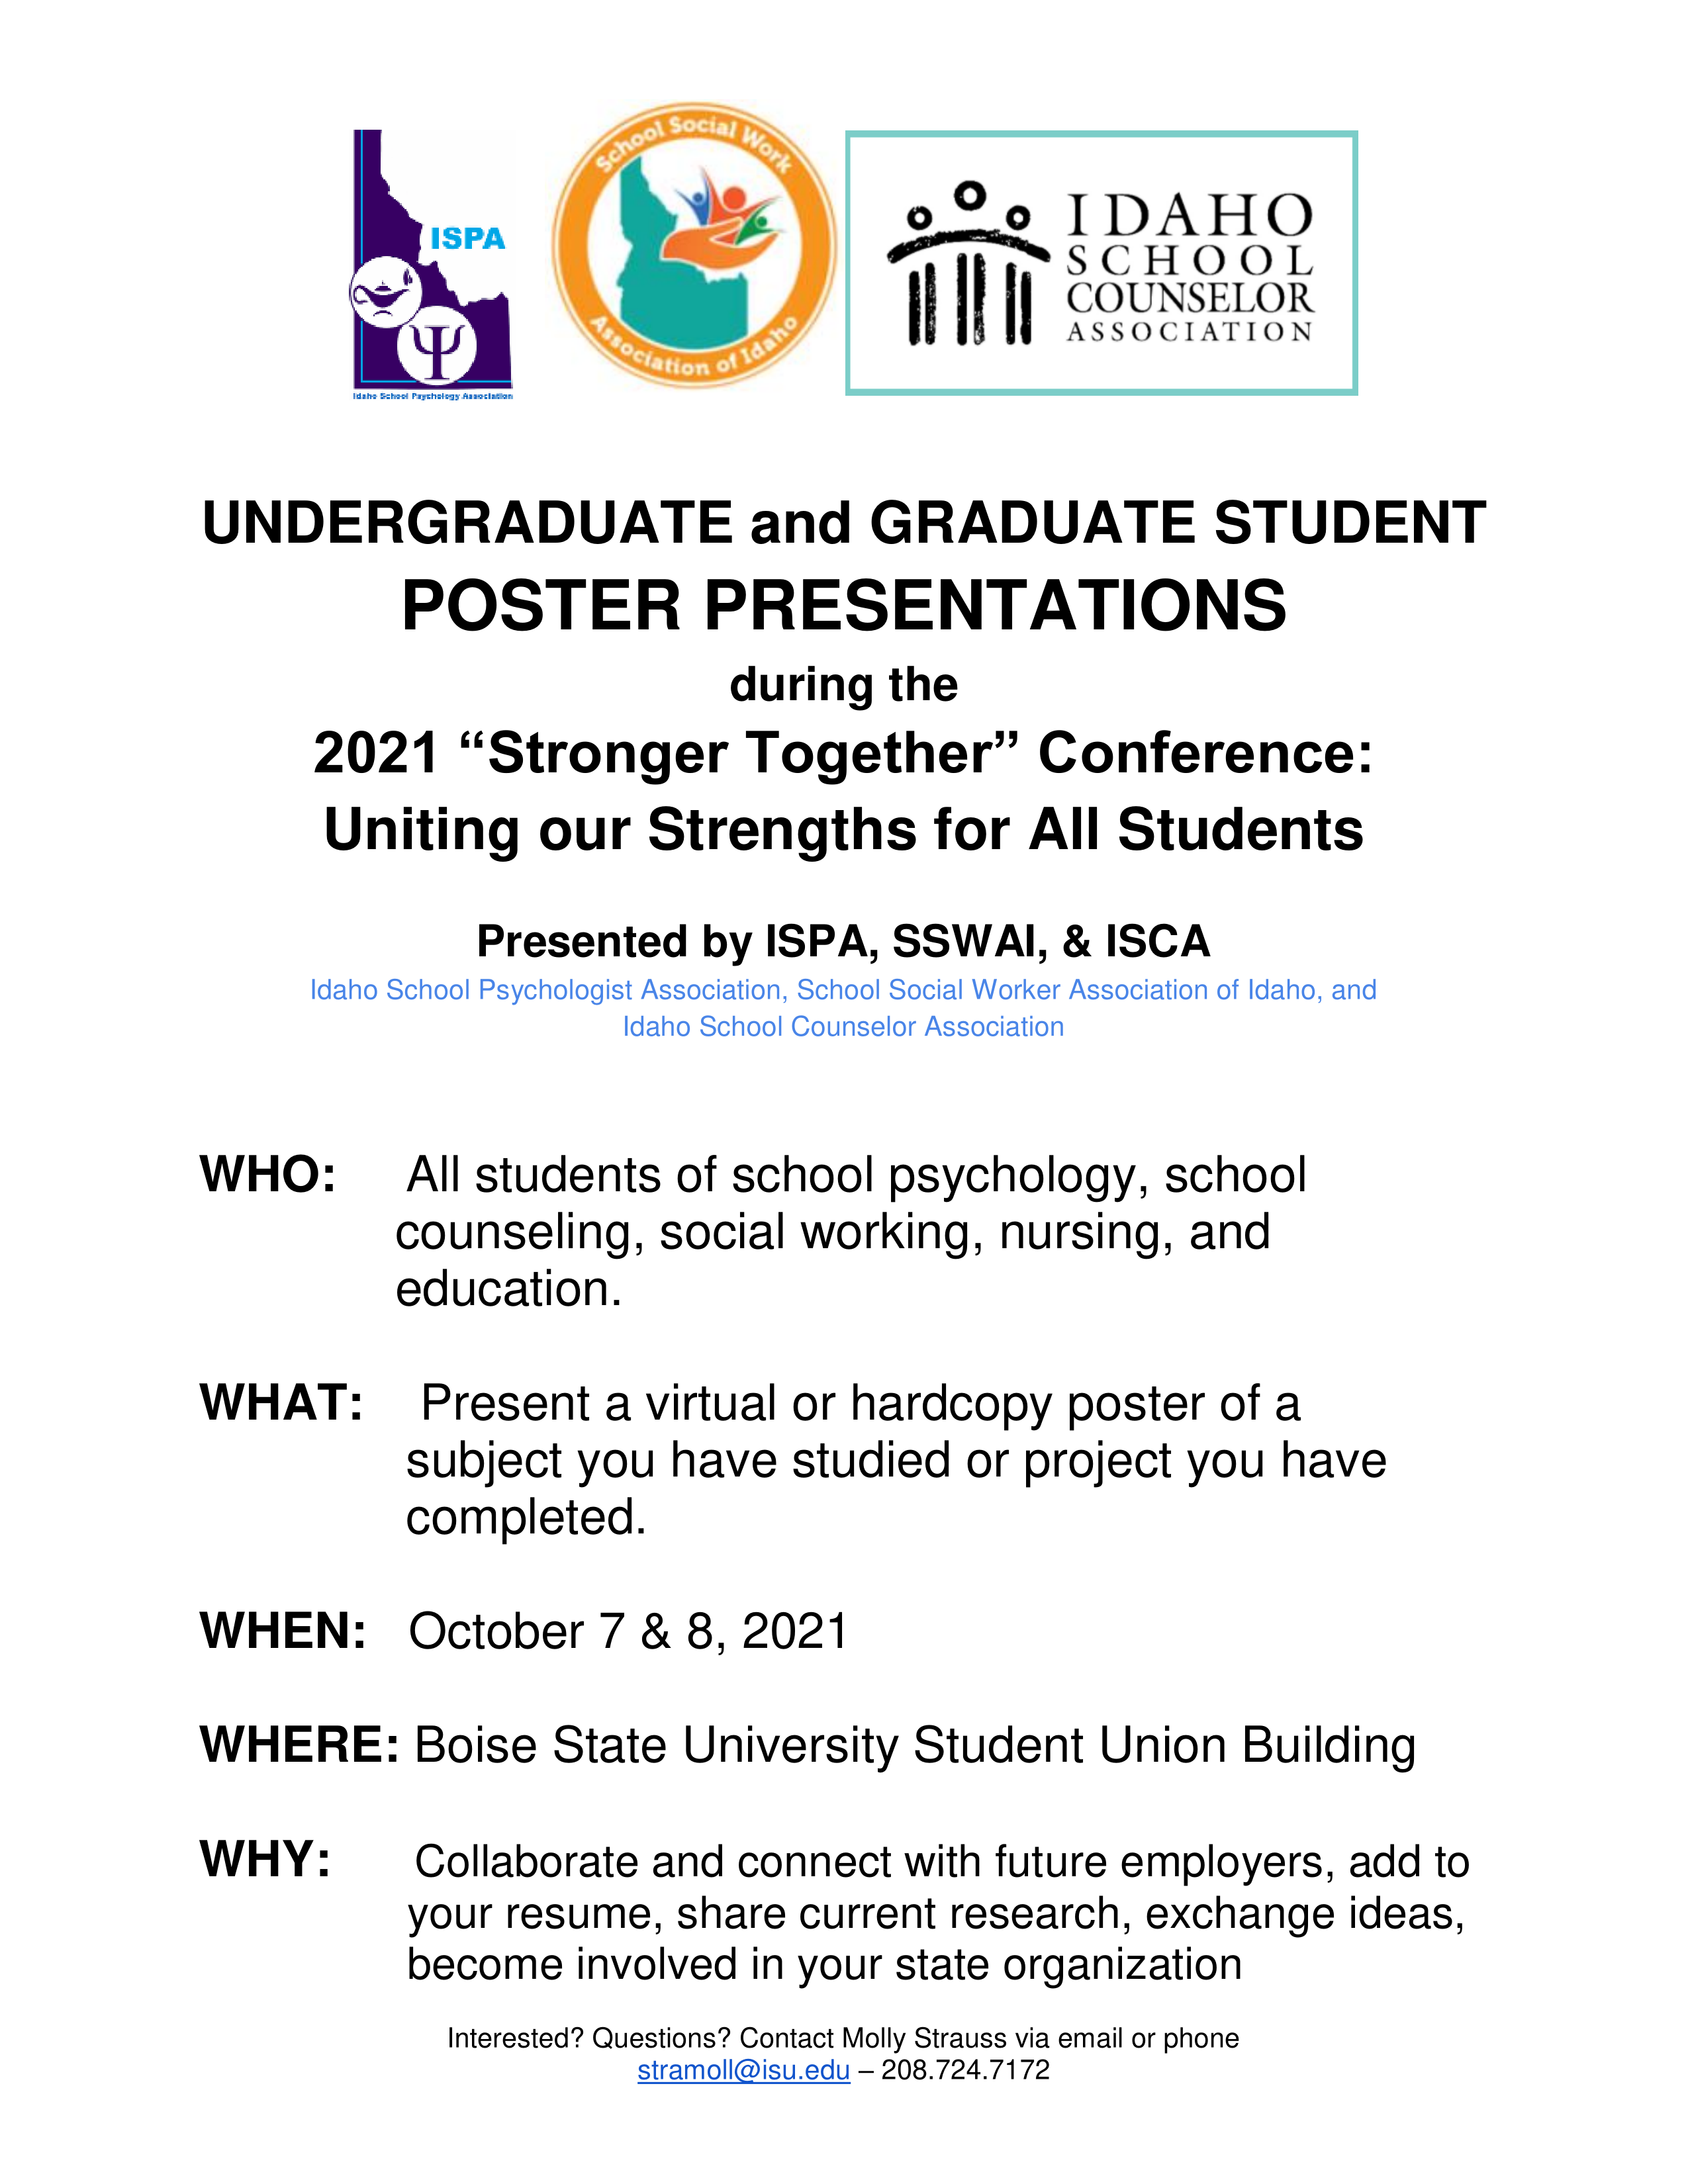 Stronger together conference flyer, link to larger image, text description available below